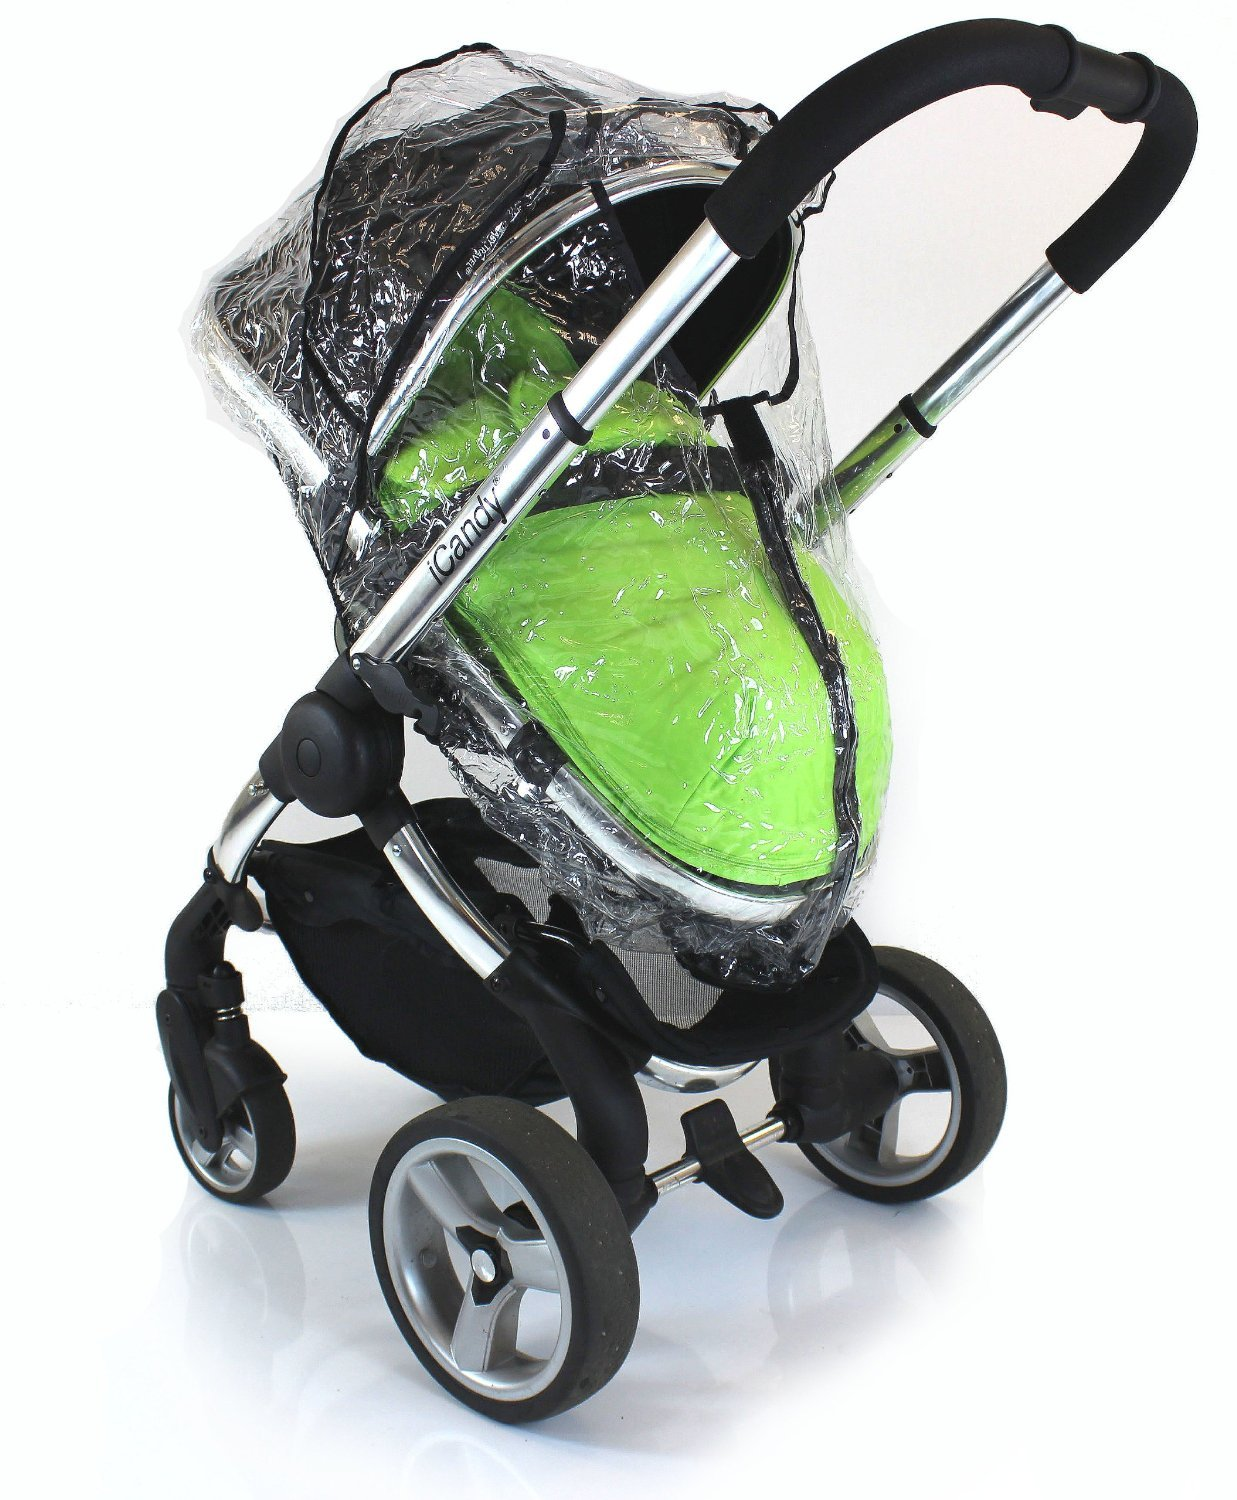 Cherry Pear Stokke Peach Raincover Professional Heavy Duty Rain Cover Universal Fit iCandy Apple